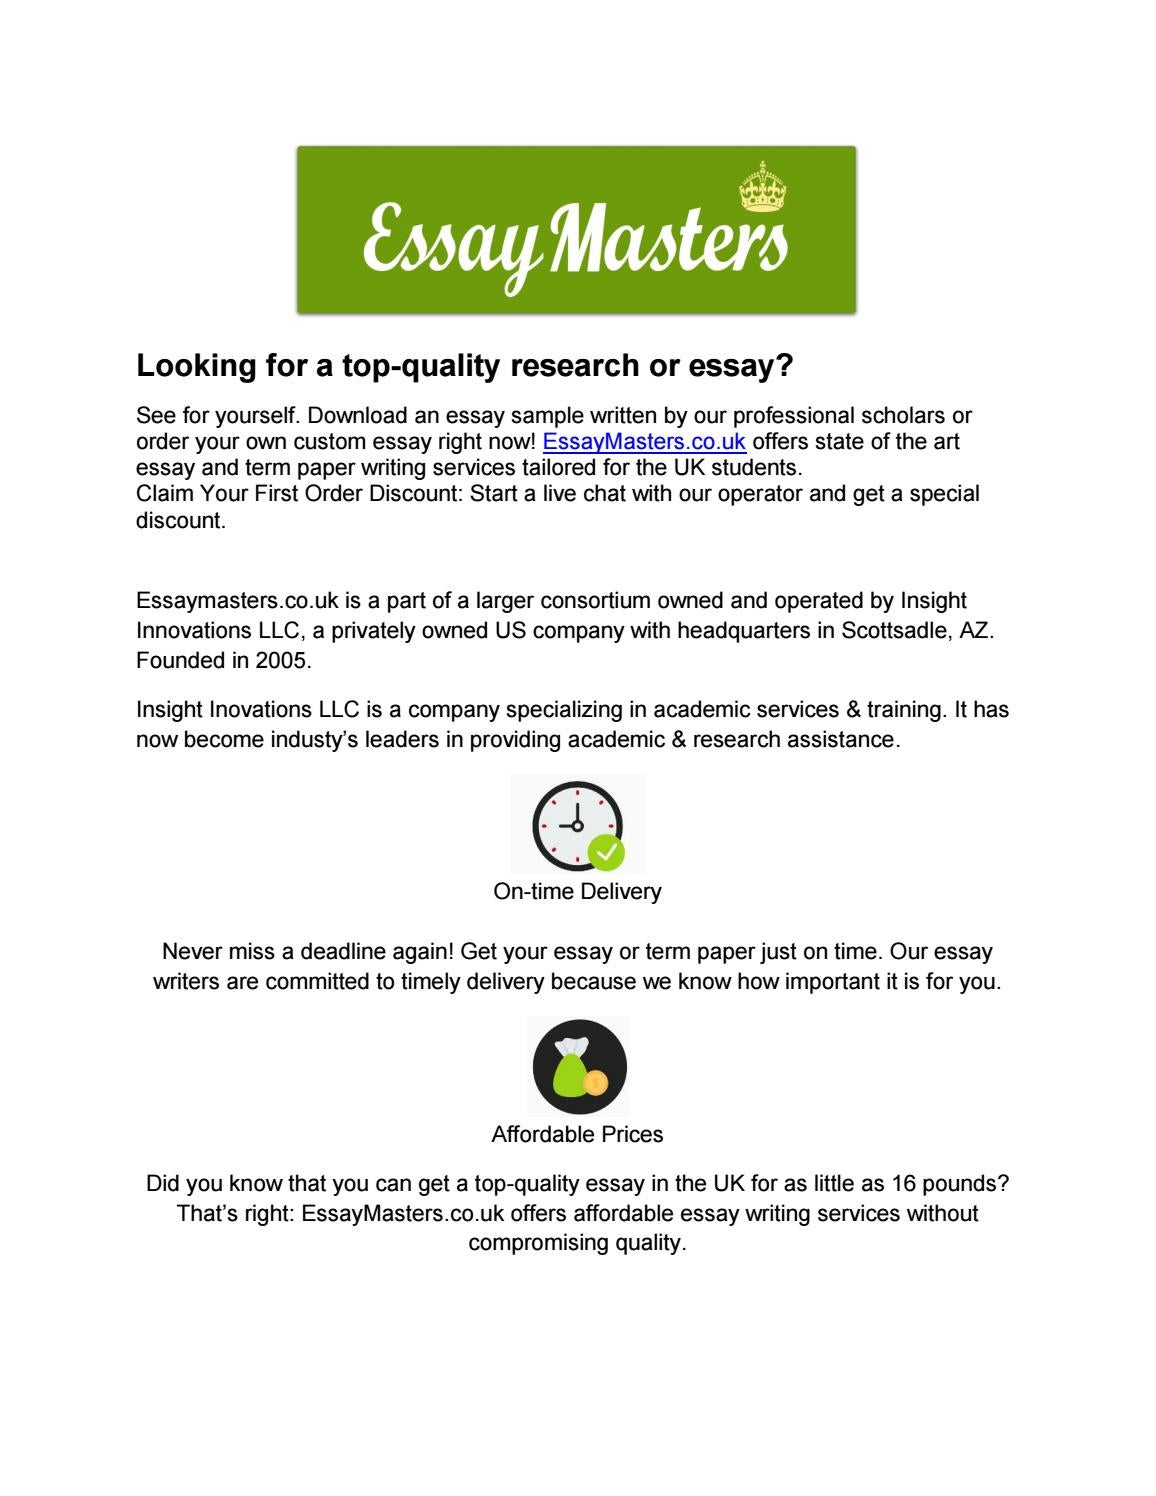 Term paper writers site us best phd essay ghostwriters sites for masters